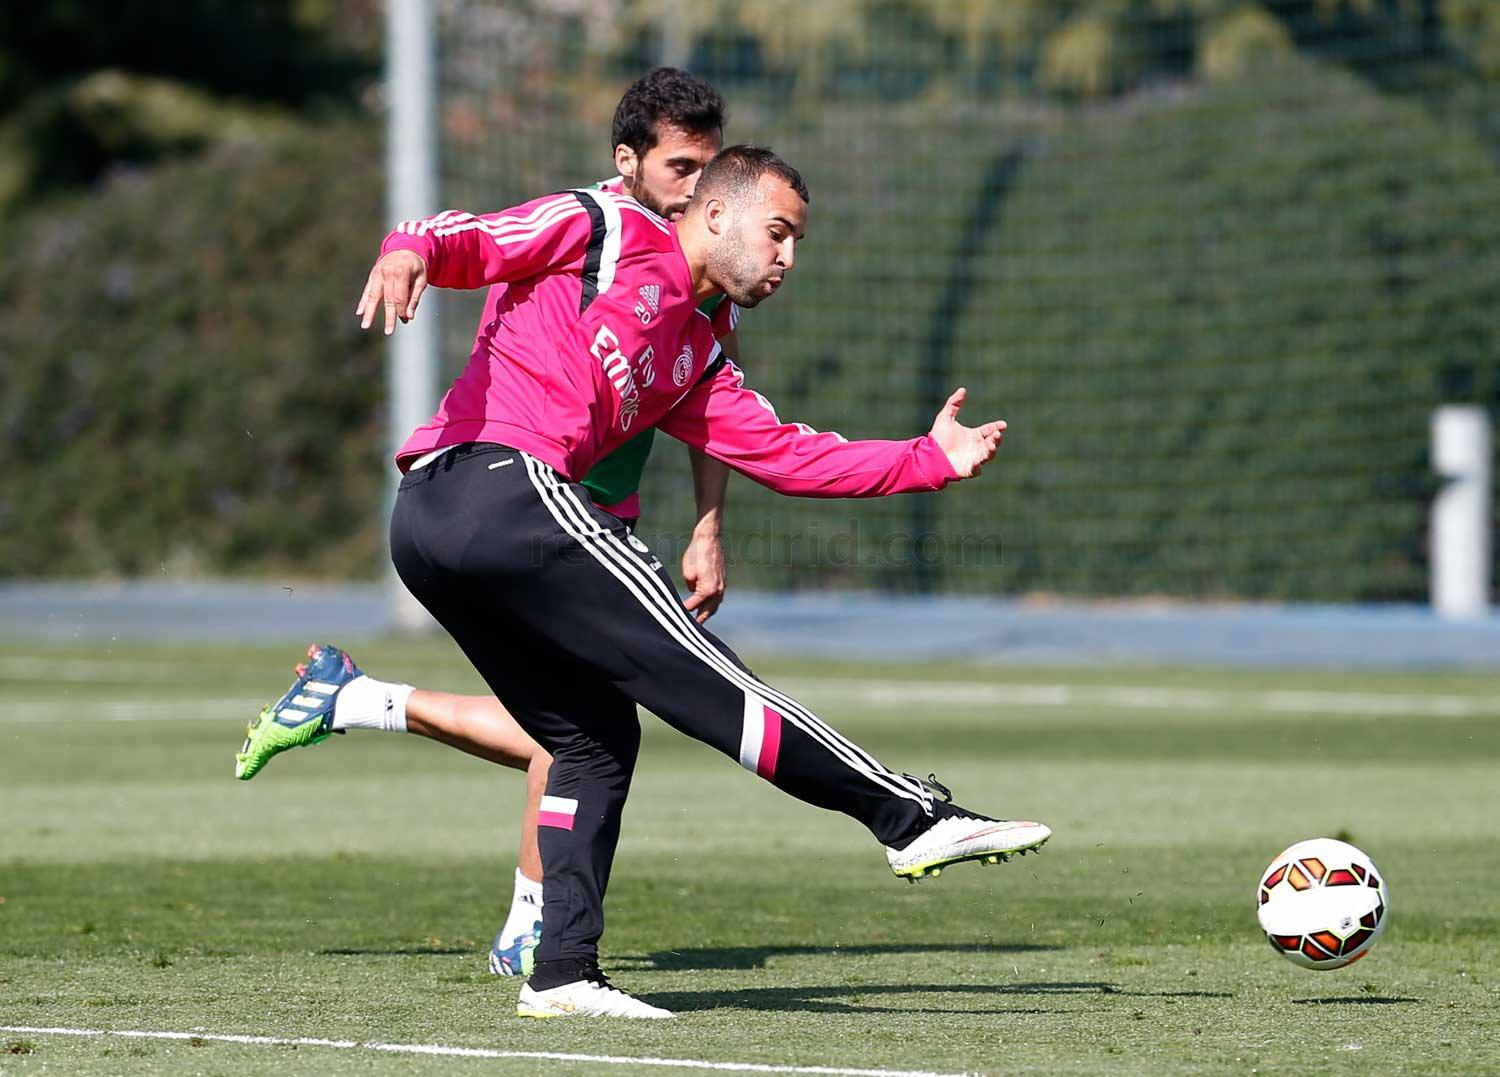 Real Madrid - Entrenamiento del Real Madrid - 16-03-2015